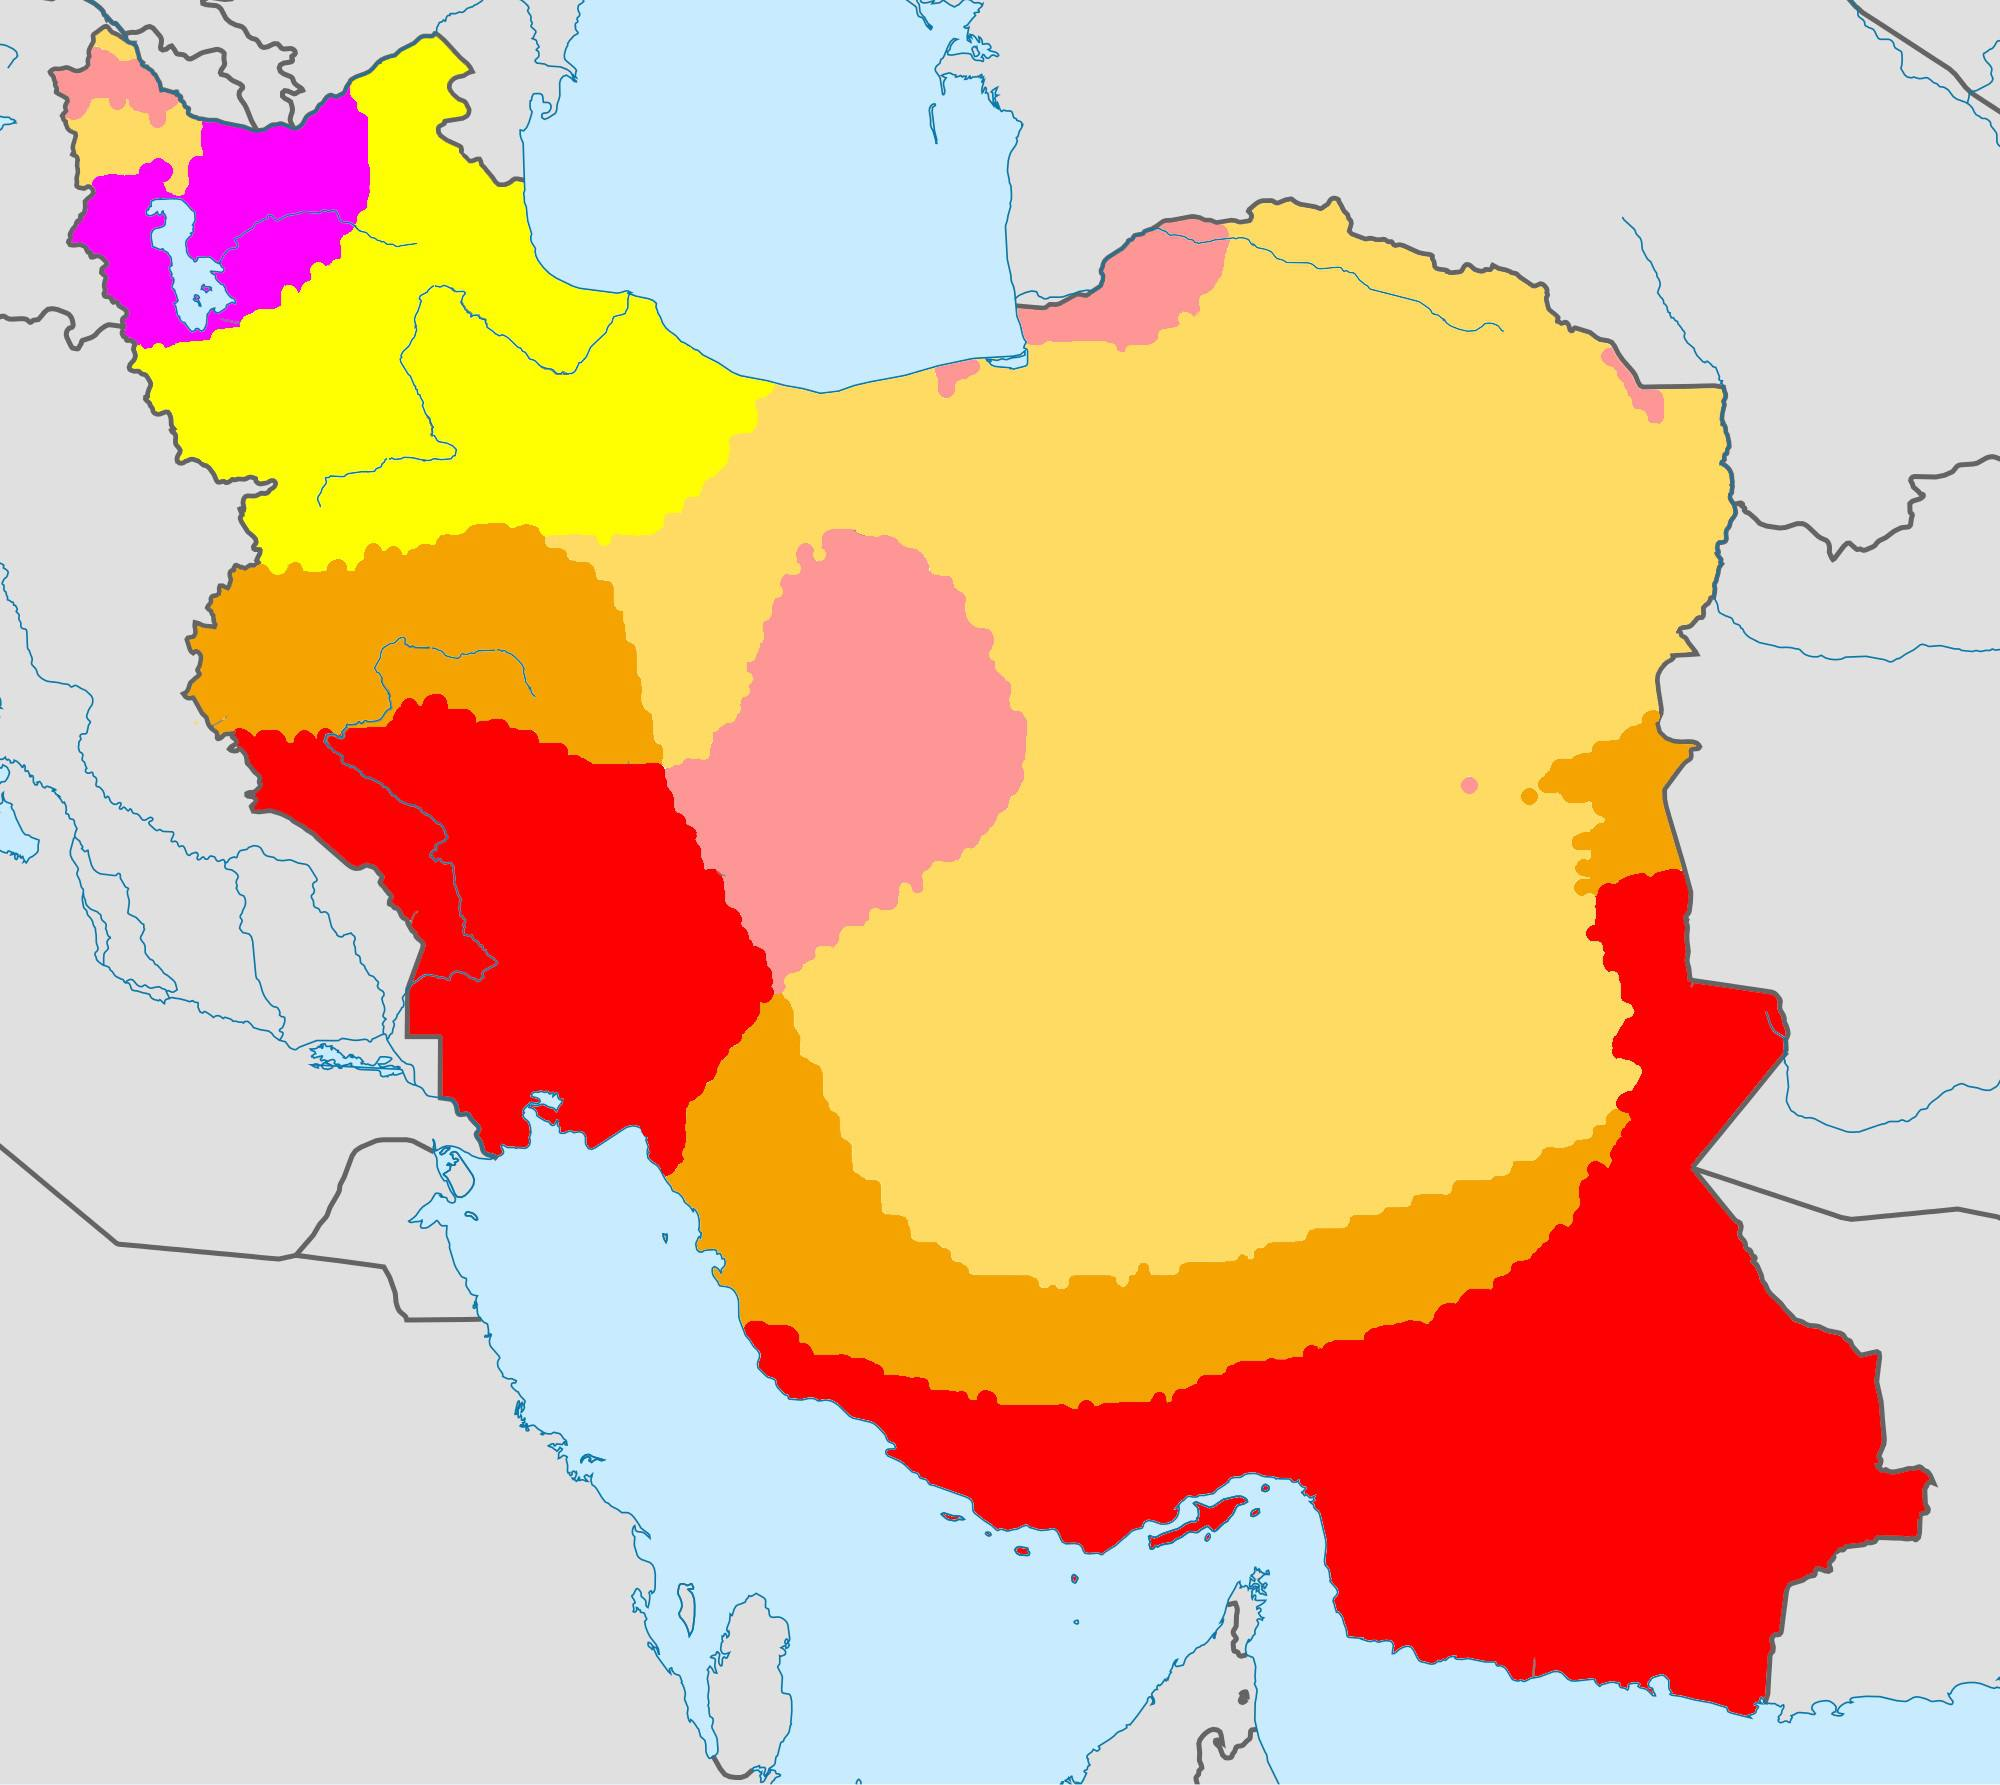 Map of Iran with Koppen climate classification.